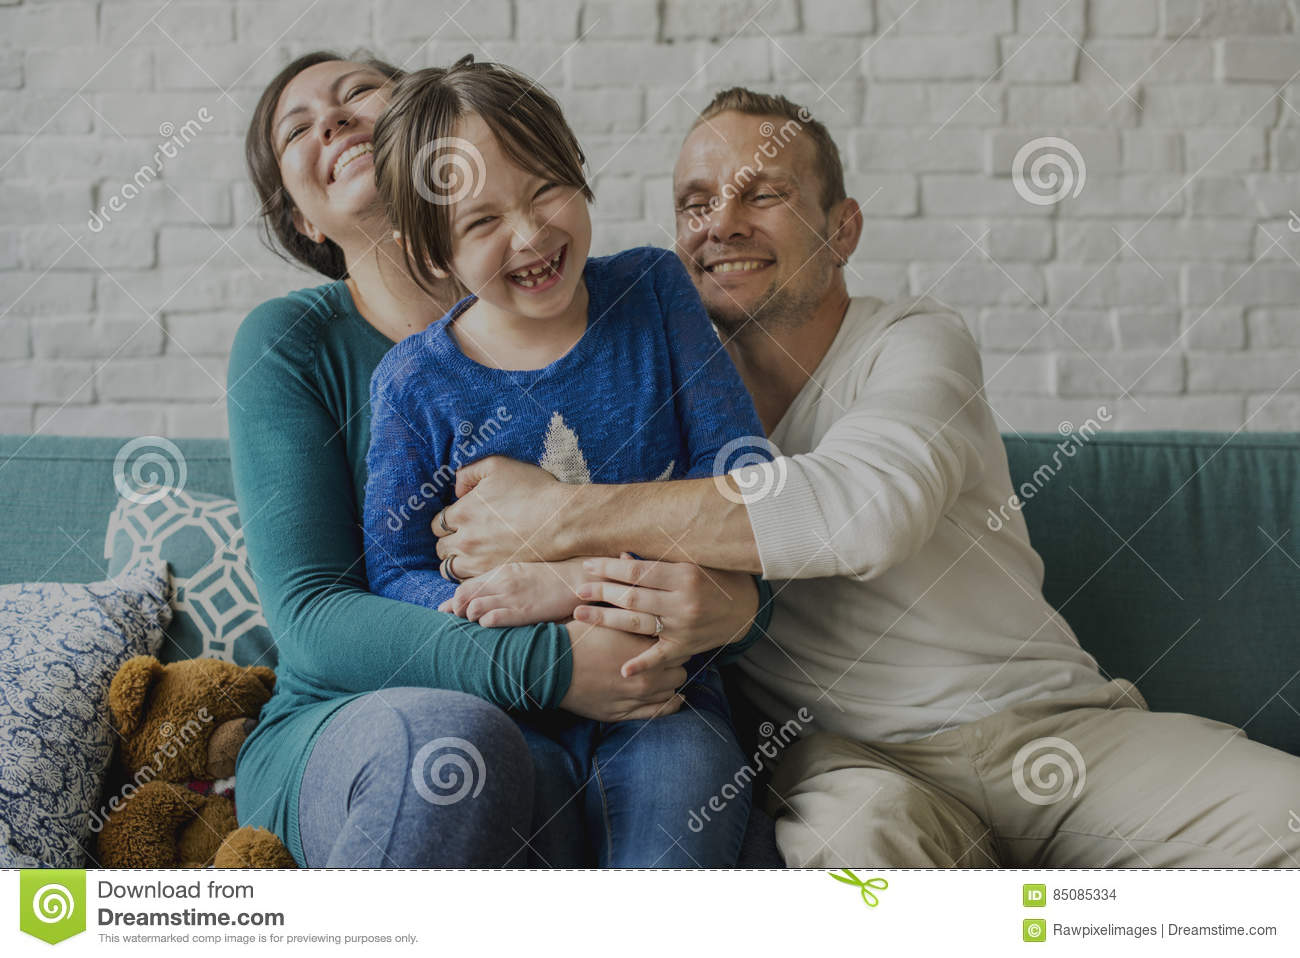 Family Spend Time Happiness Holiday Togetherness Concept